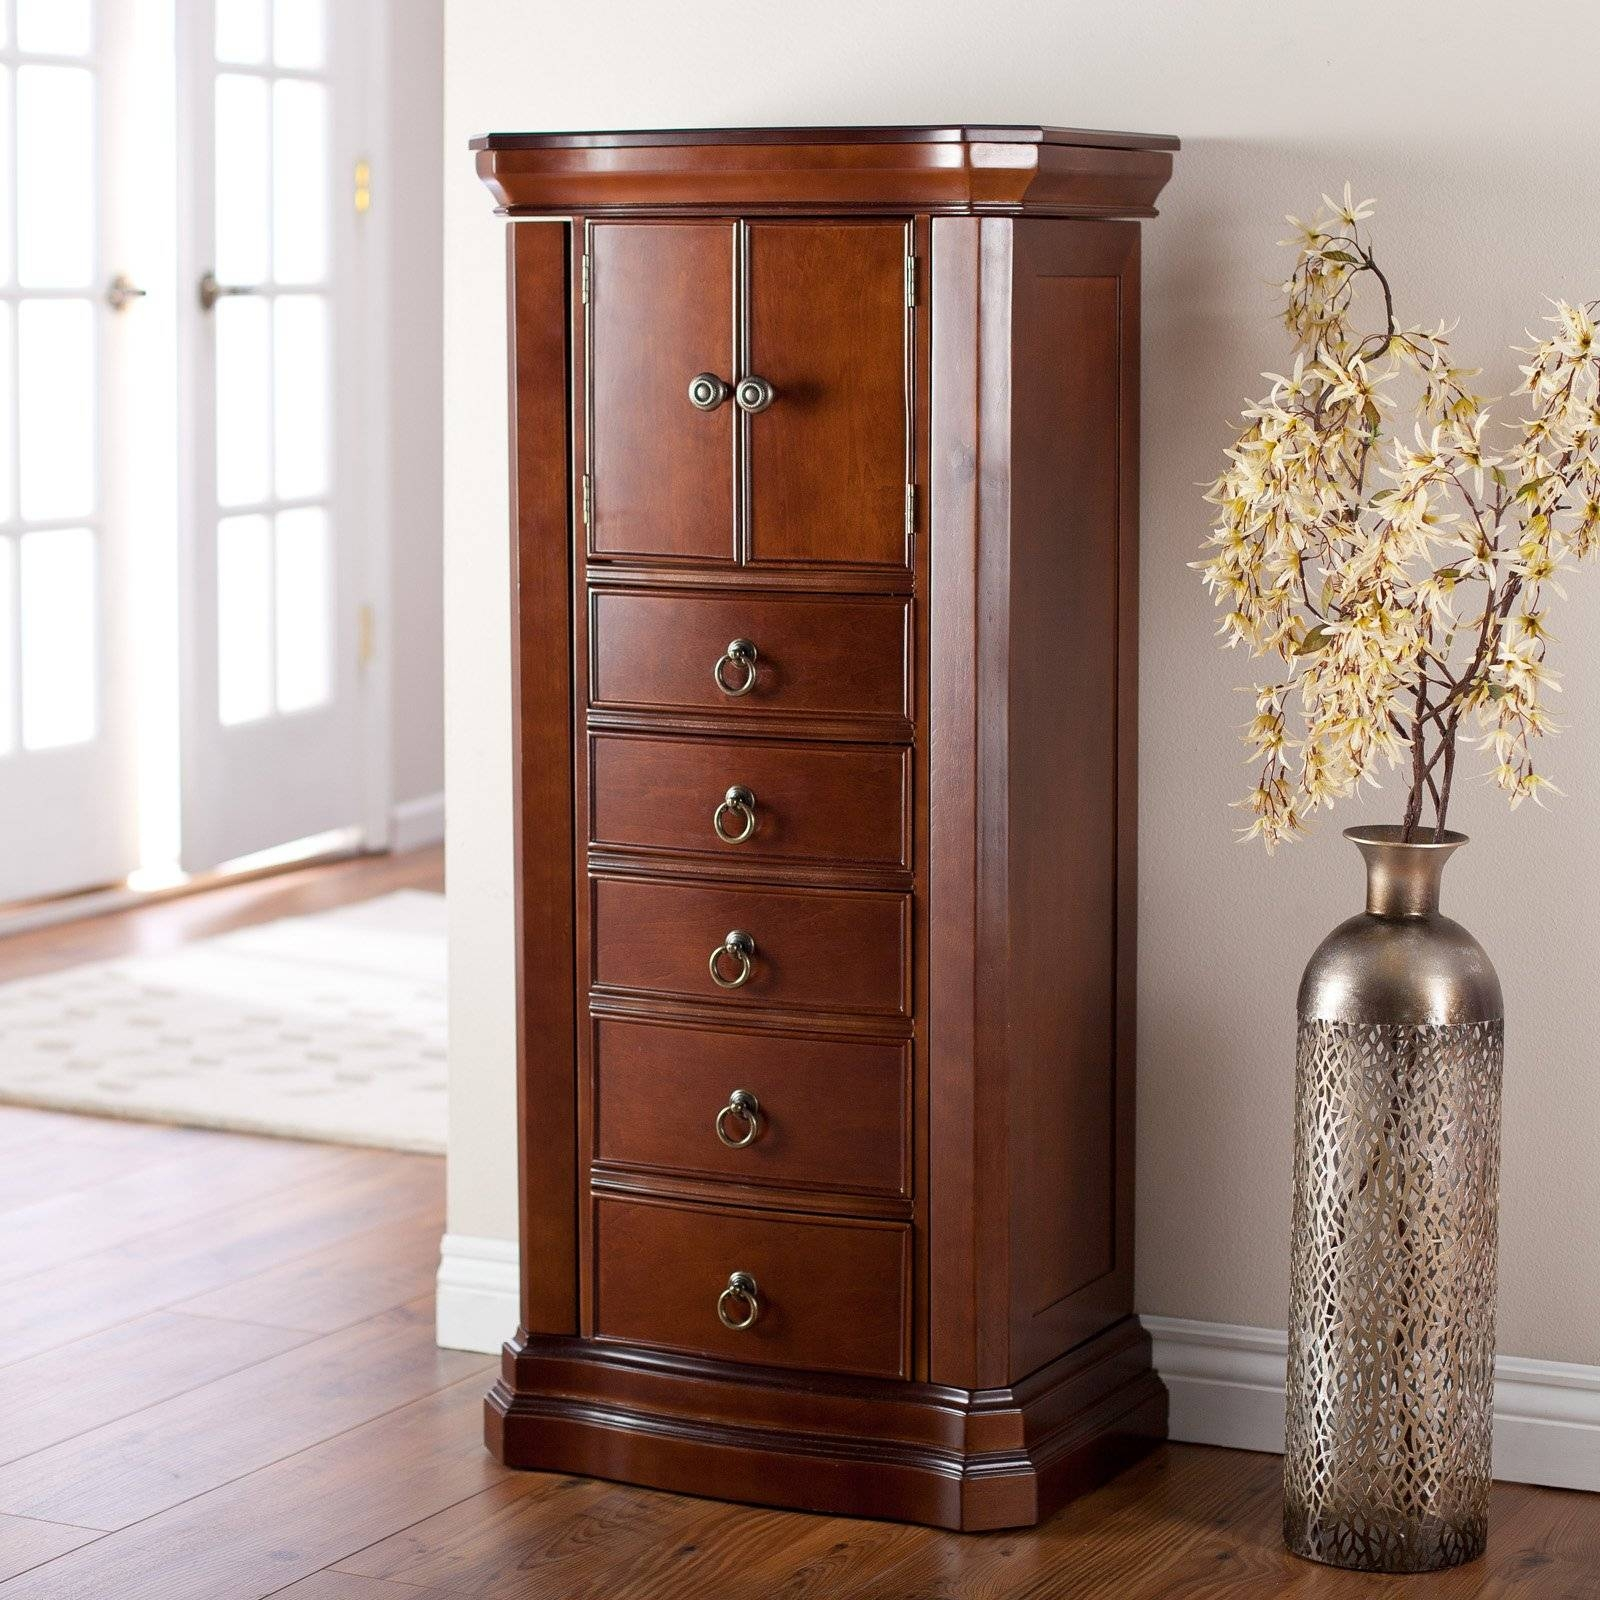 Furniture: Elegant Standing Jewelry Armoire For Home Furniture inside Free Standing Mirrors With Drawer (Image 18 of 25)